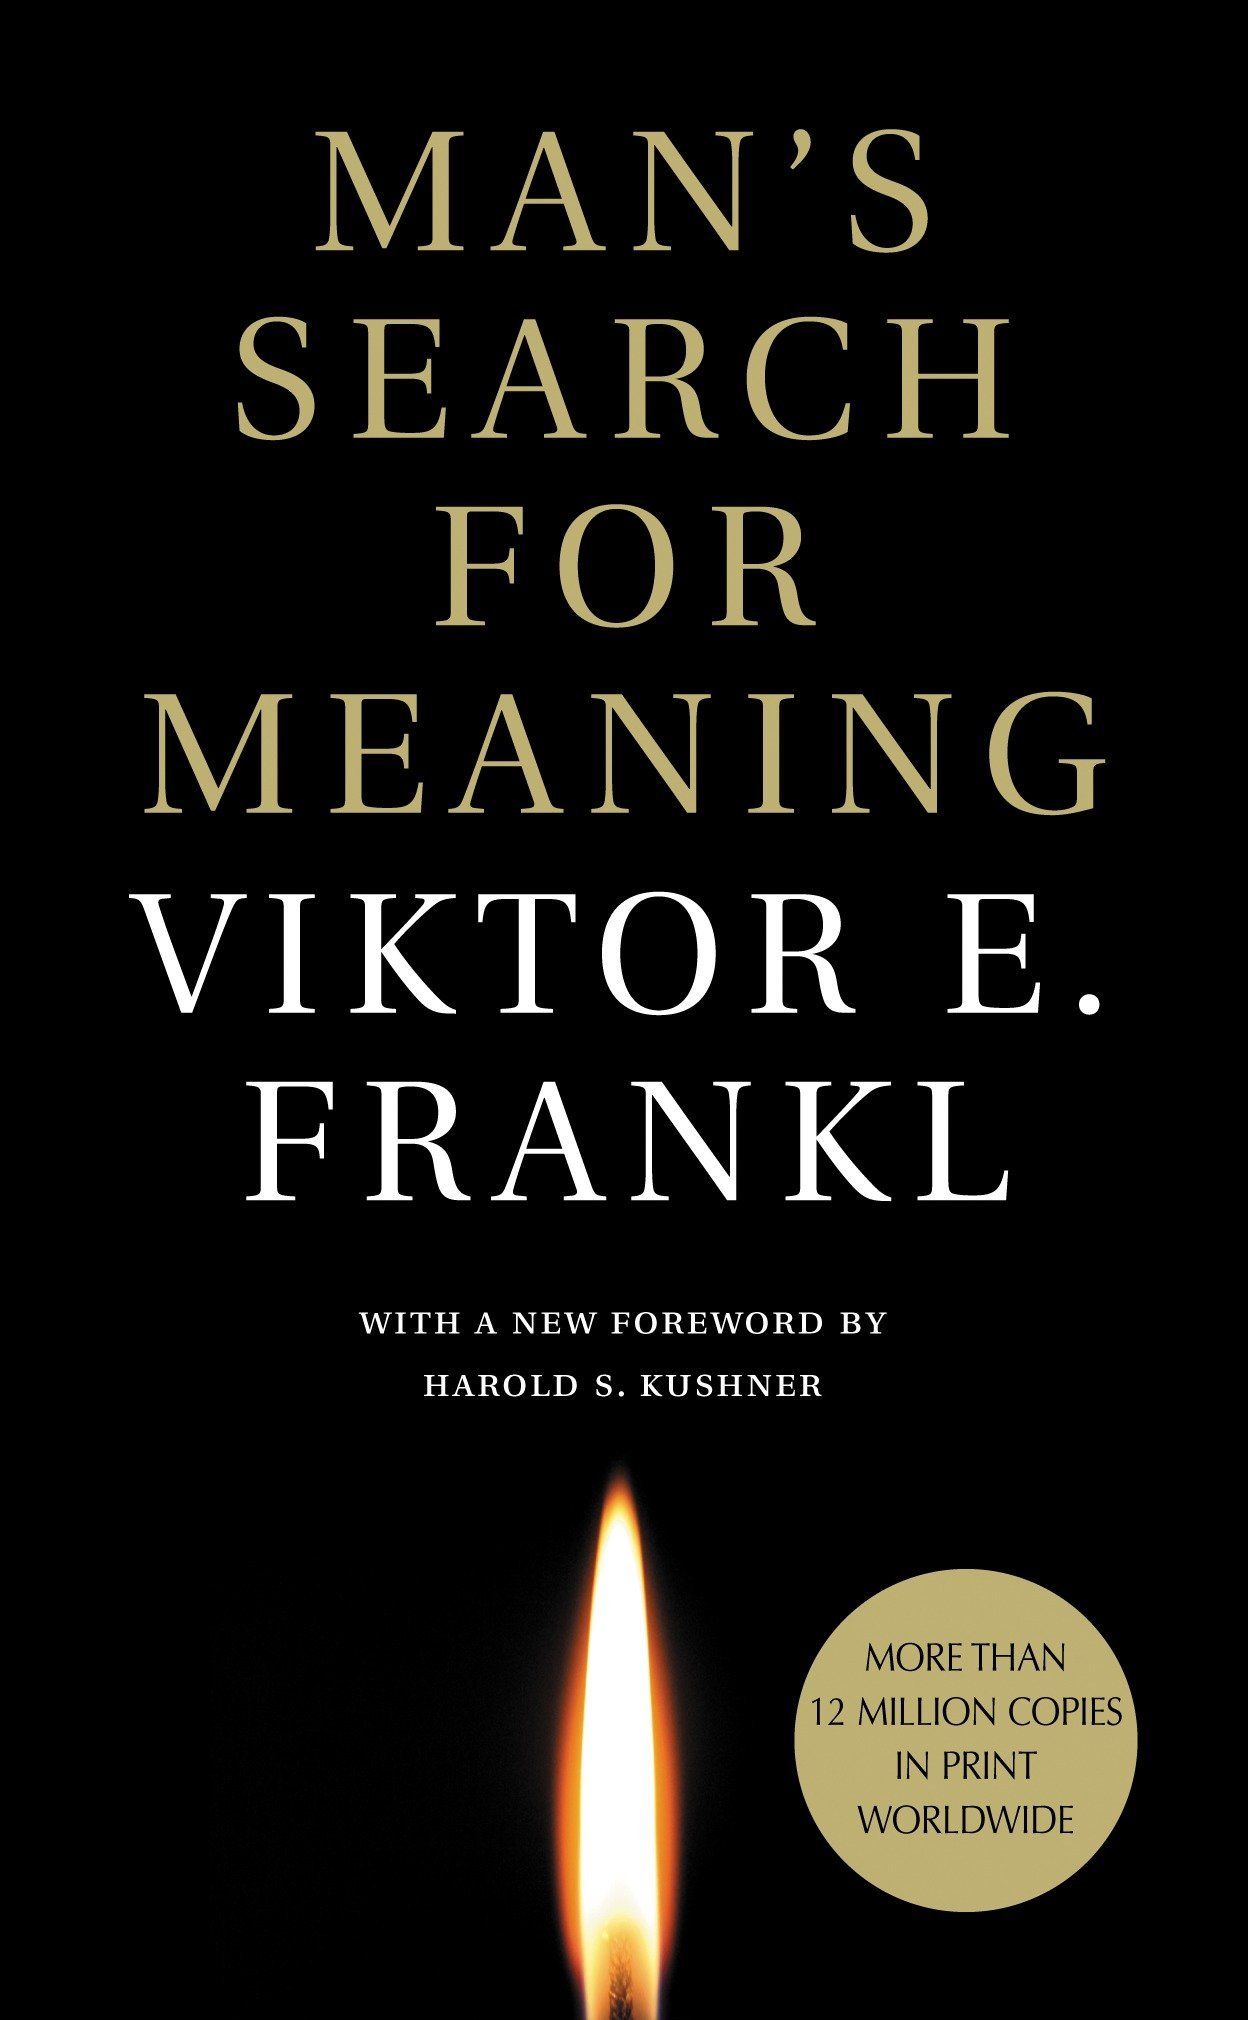 Man's Search For Meaning - Victor E. Frankl